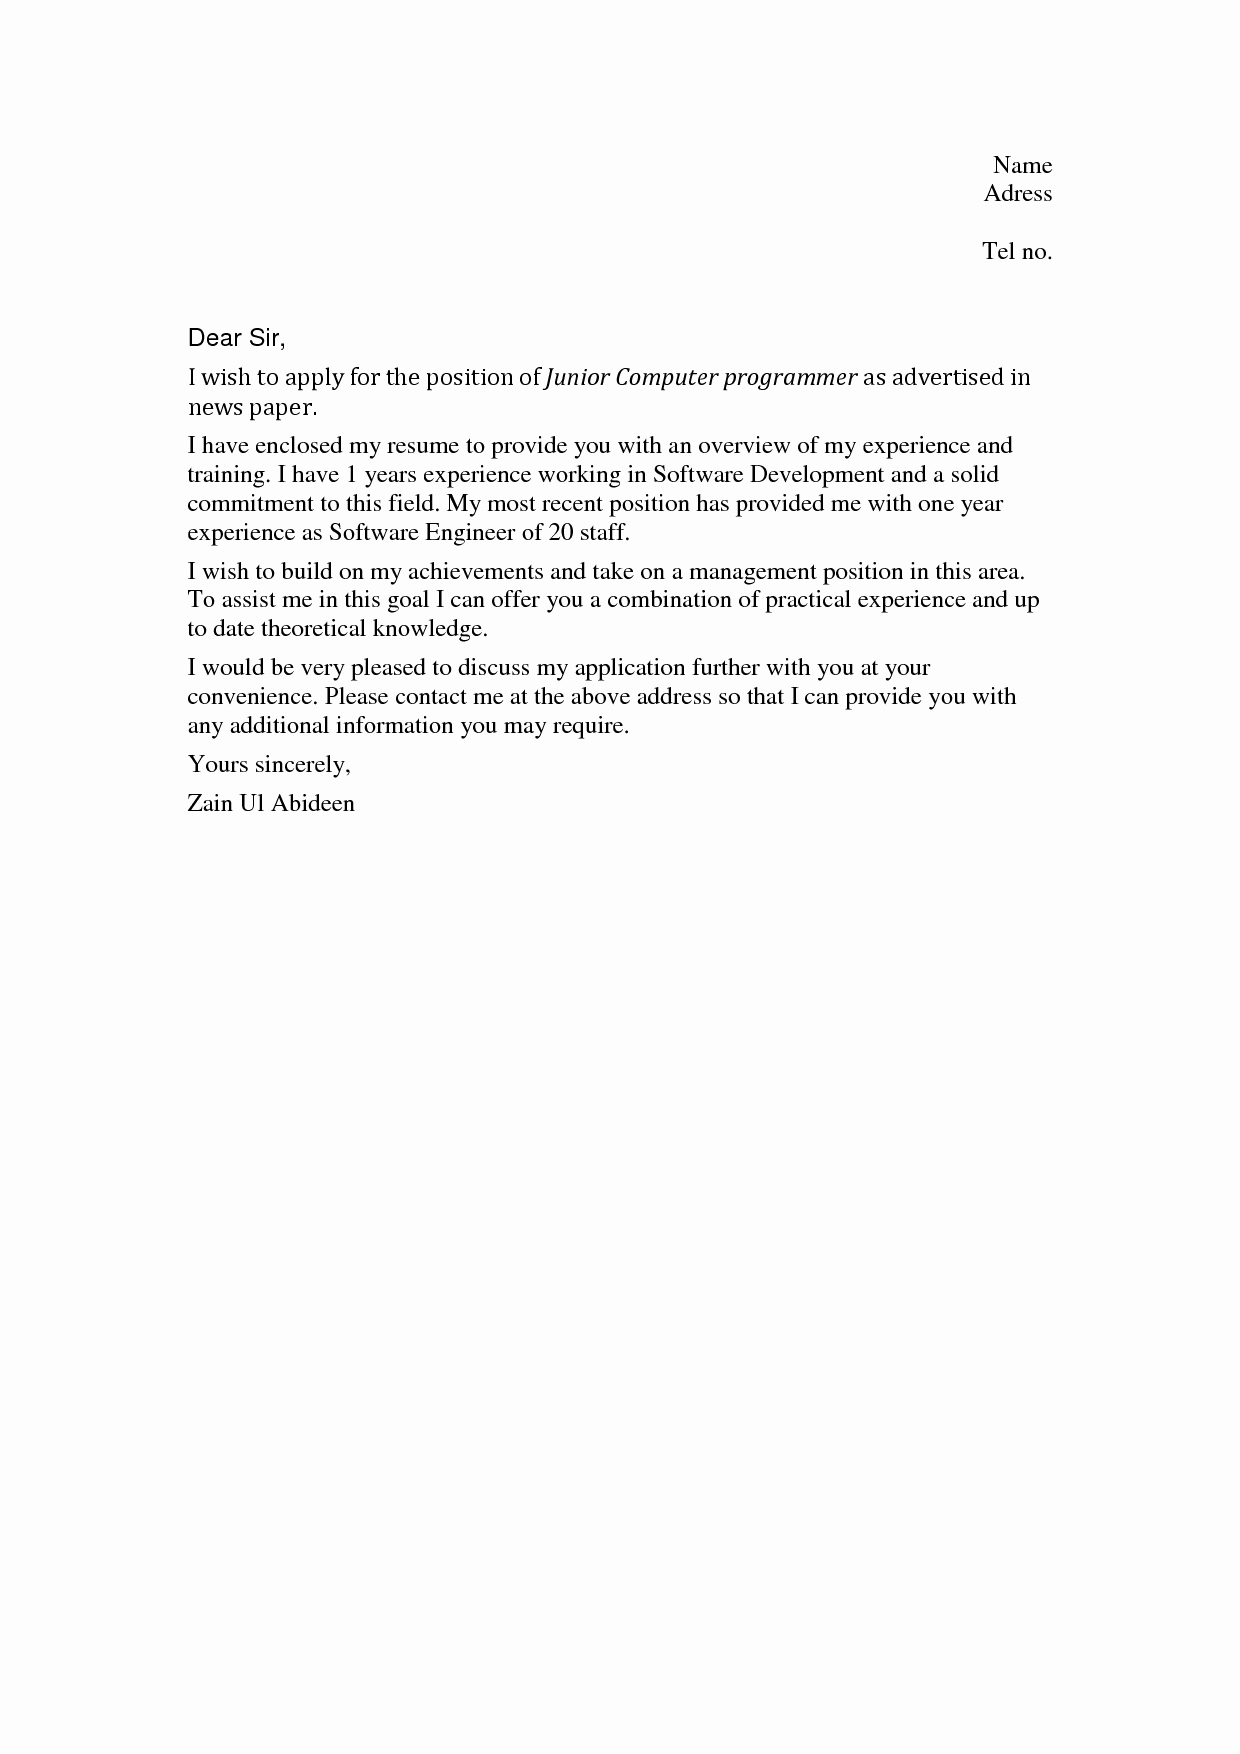 Sample Job Cover Letter Luxury Cover Letter Sample No Work Experience Cover Letter